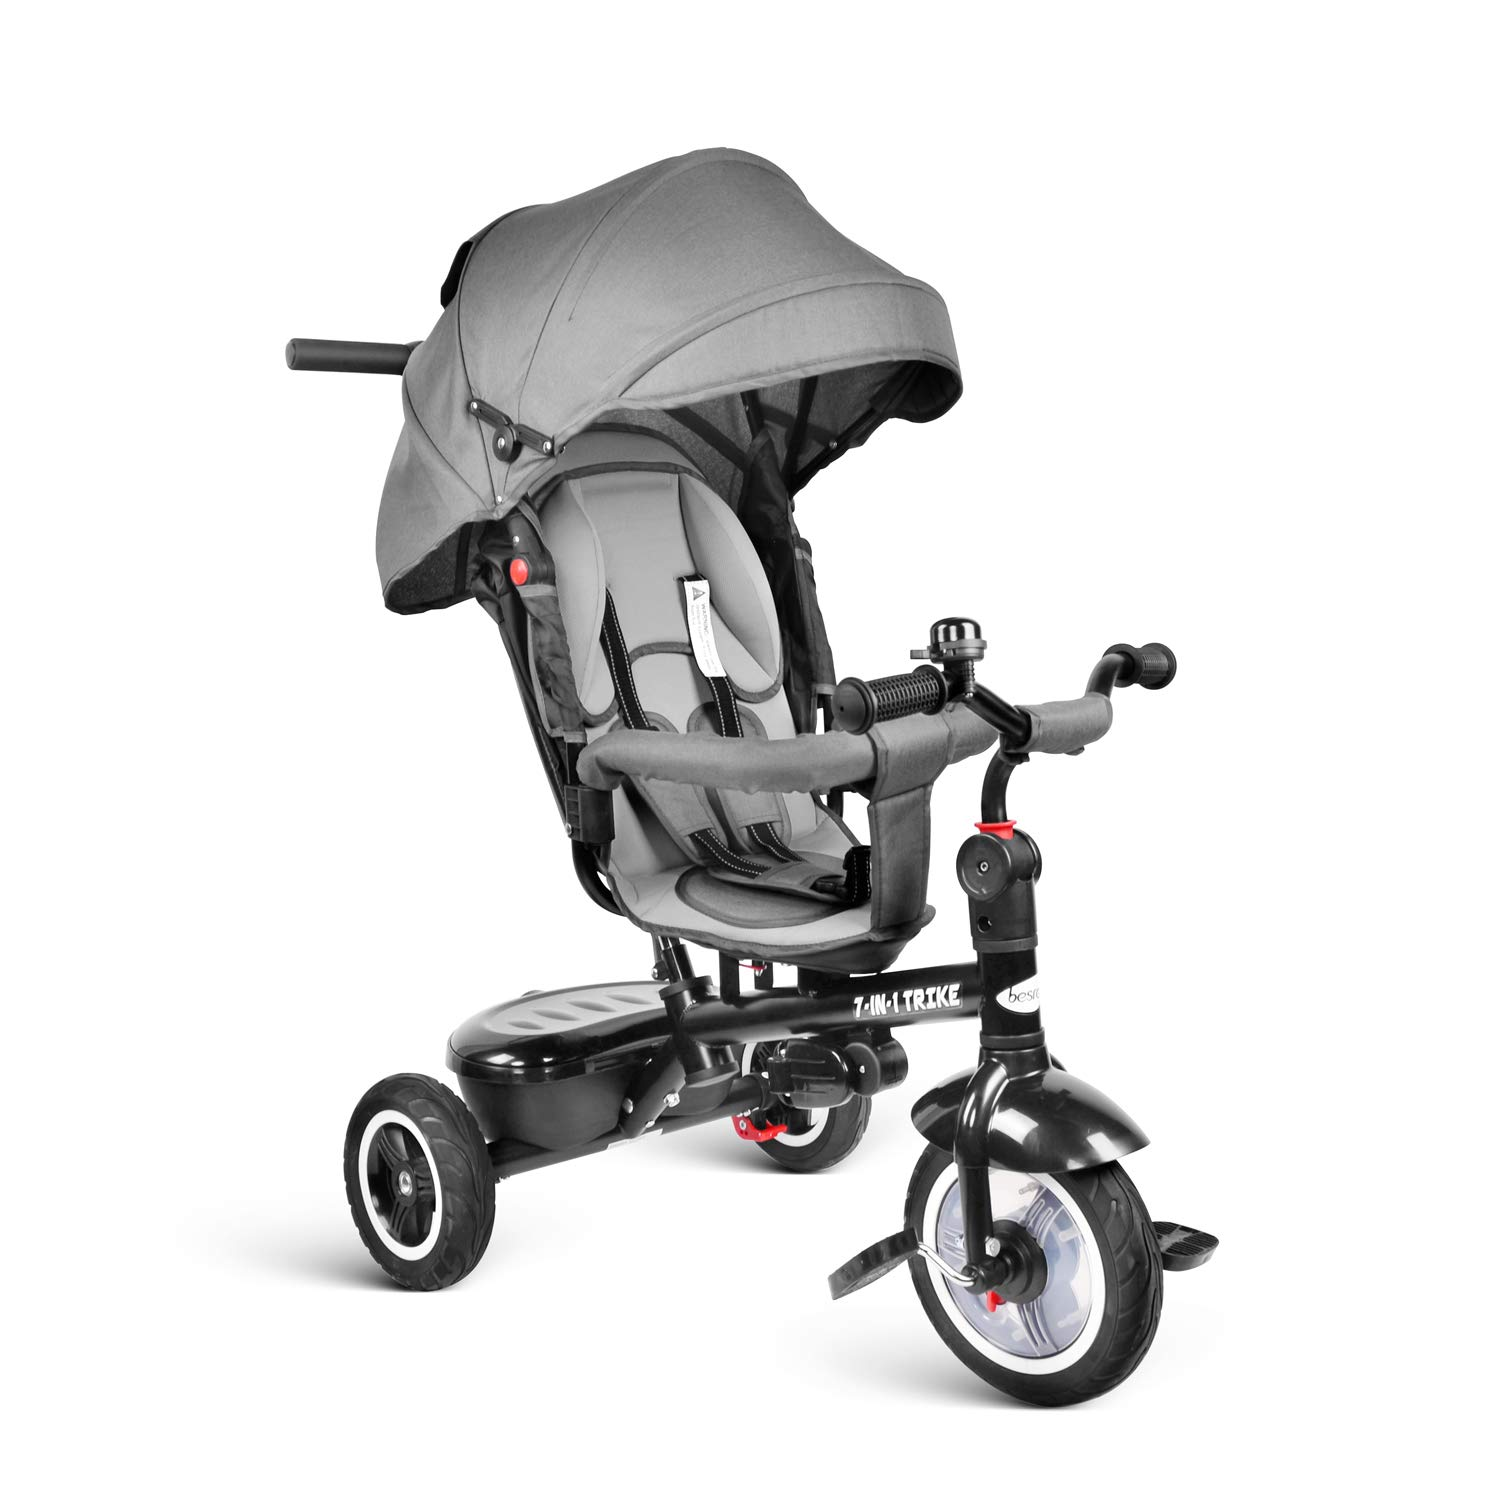 besrey Kids Tricycle 7-in-1 Baby Trike Tricycle with Push Handle/Wheel Clutch/Rotating and Reclining Seat for Children to Sleep in - Gray